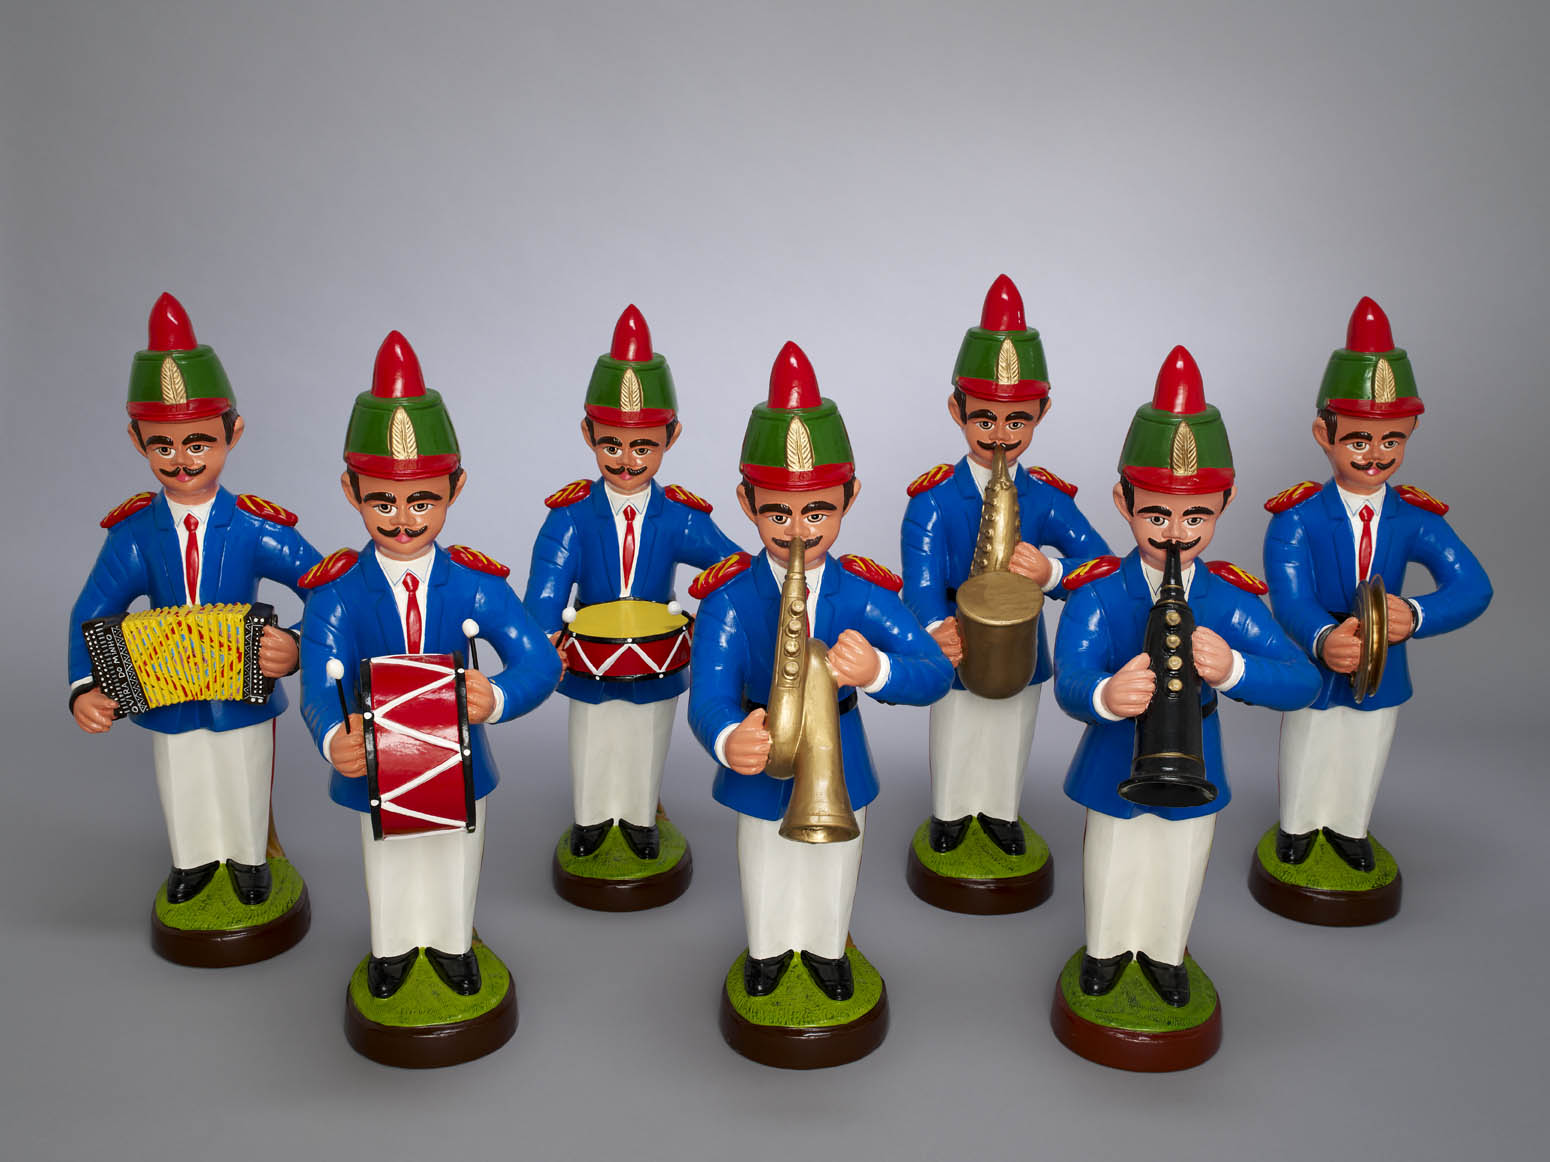 Maria Helena Pedro da Silva, Ceramic figures of bandsmen, Barcelos, 2010. Photo: Kyla Bailey.